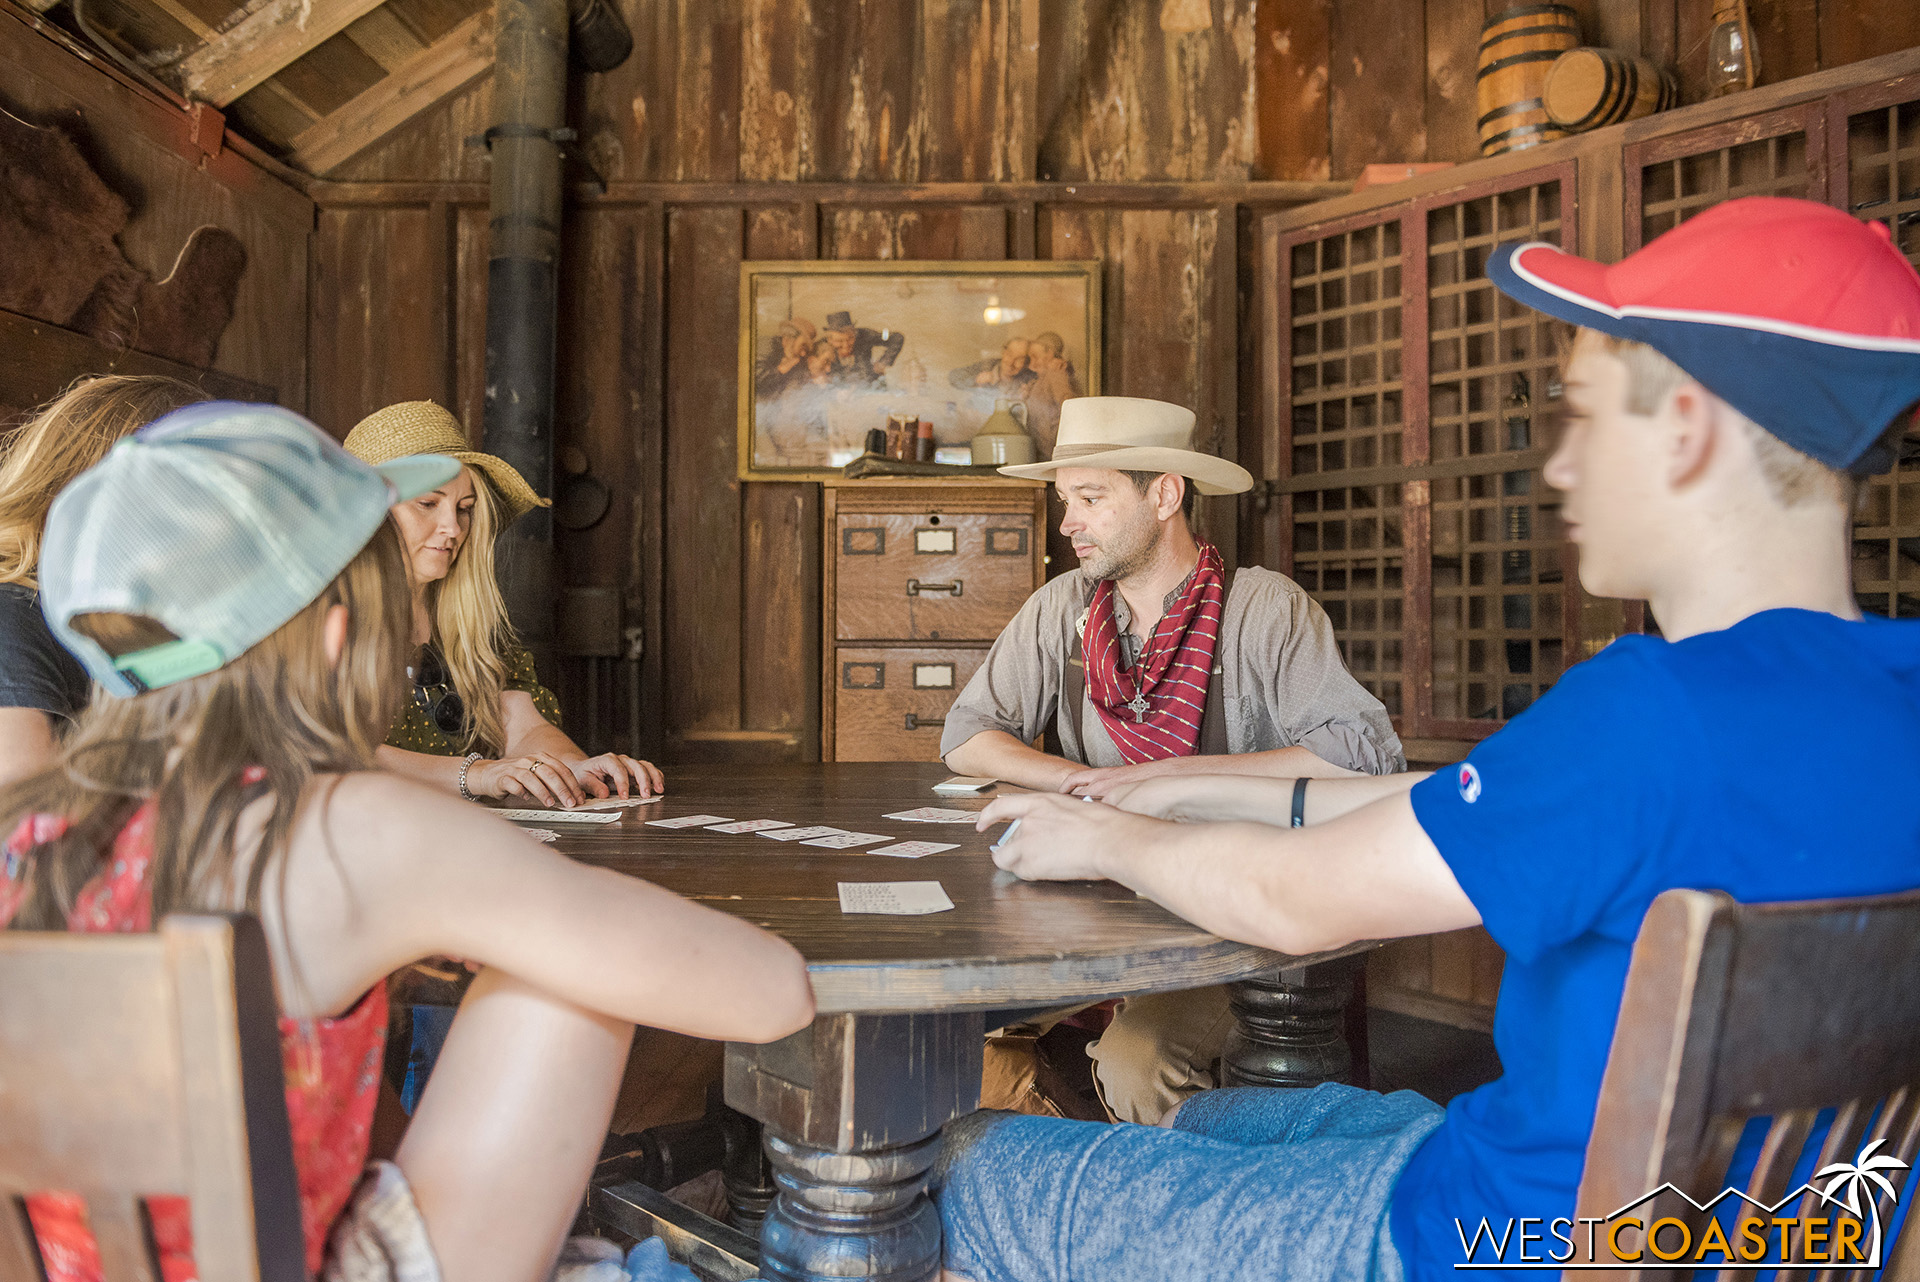 As is the Sheriff's Office, where guests frequently play cards with the law.